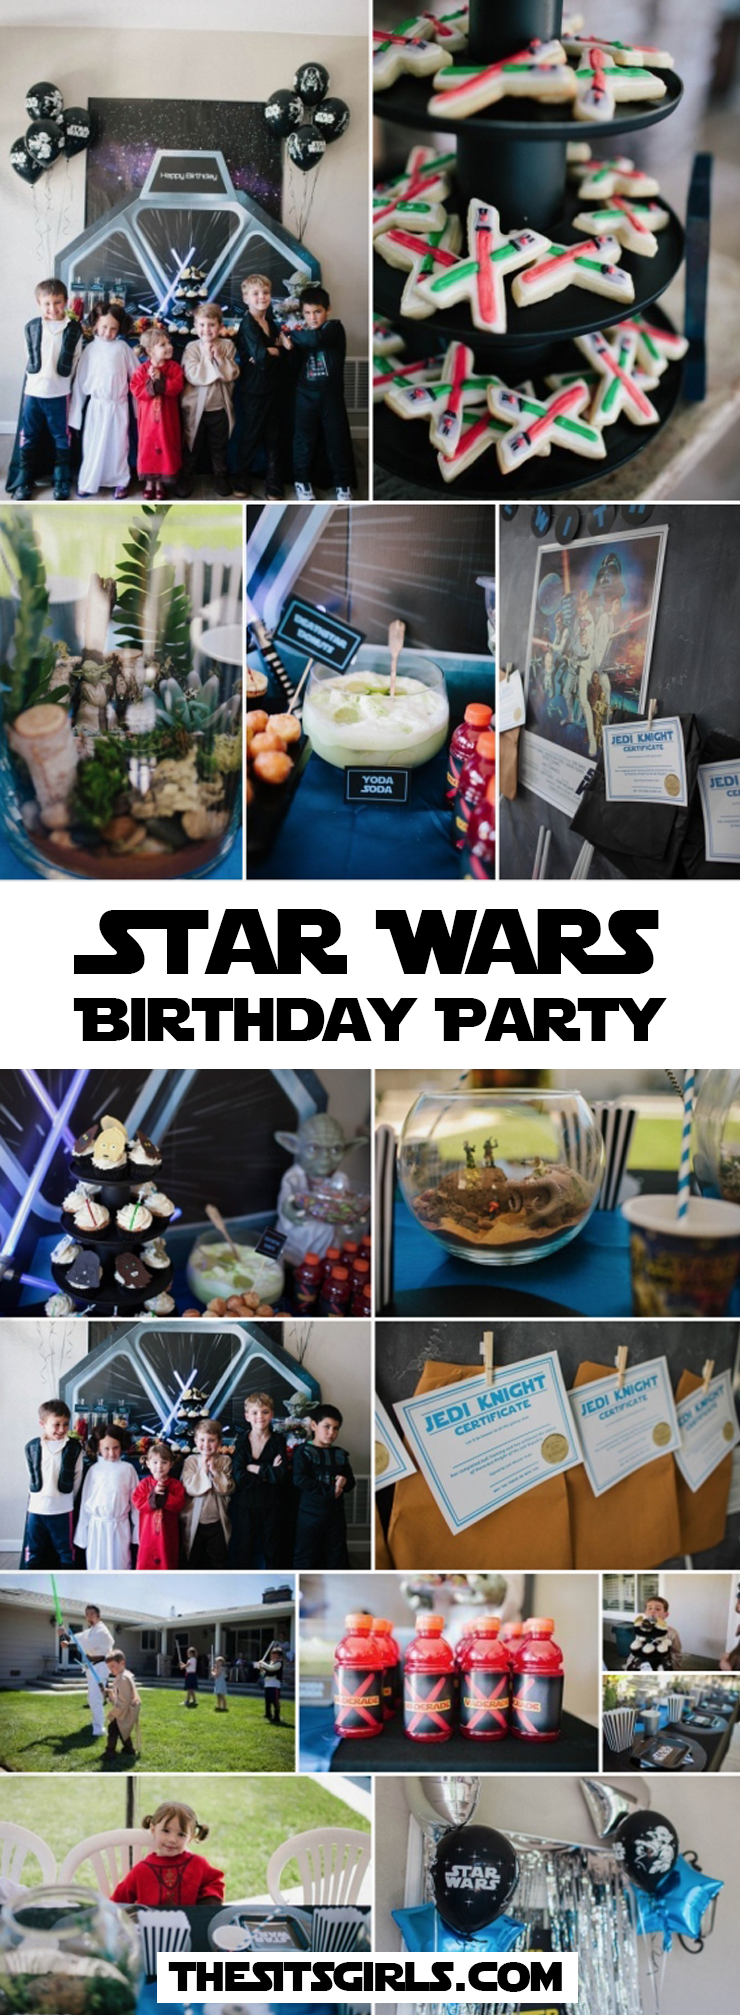 Star Wars Birthday Party Ideas | A Star Wars party is the perfect kids birthday party. Click through for inspiration and great tips to plan the perfect party for your favorite Jedi! May the force be with you.